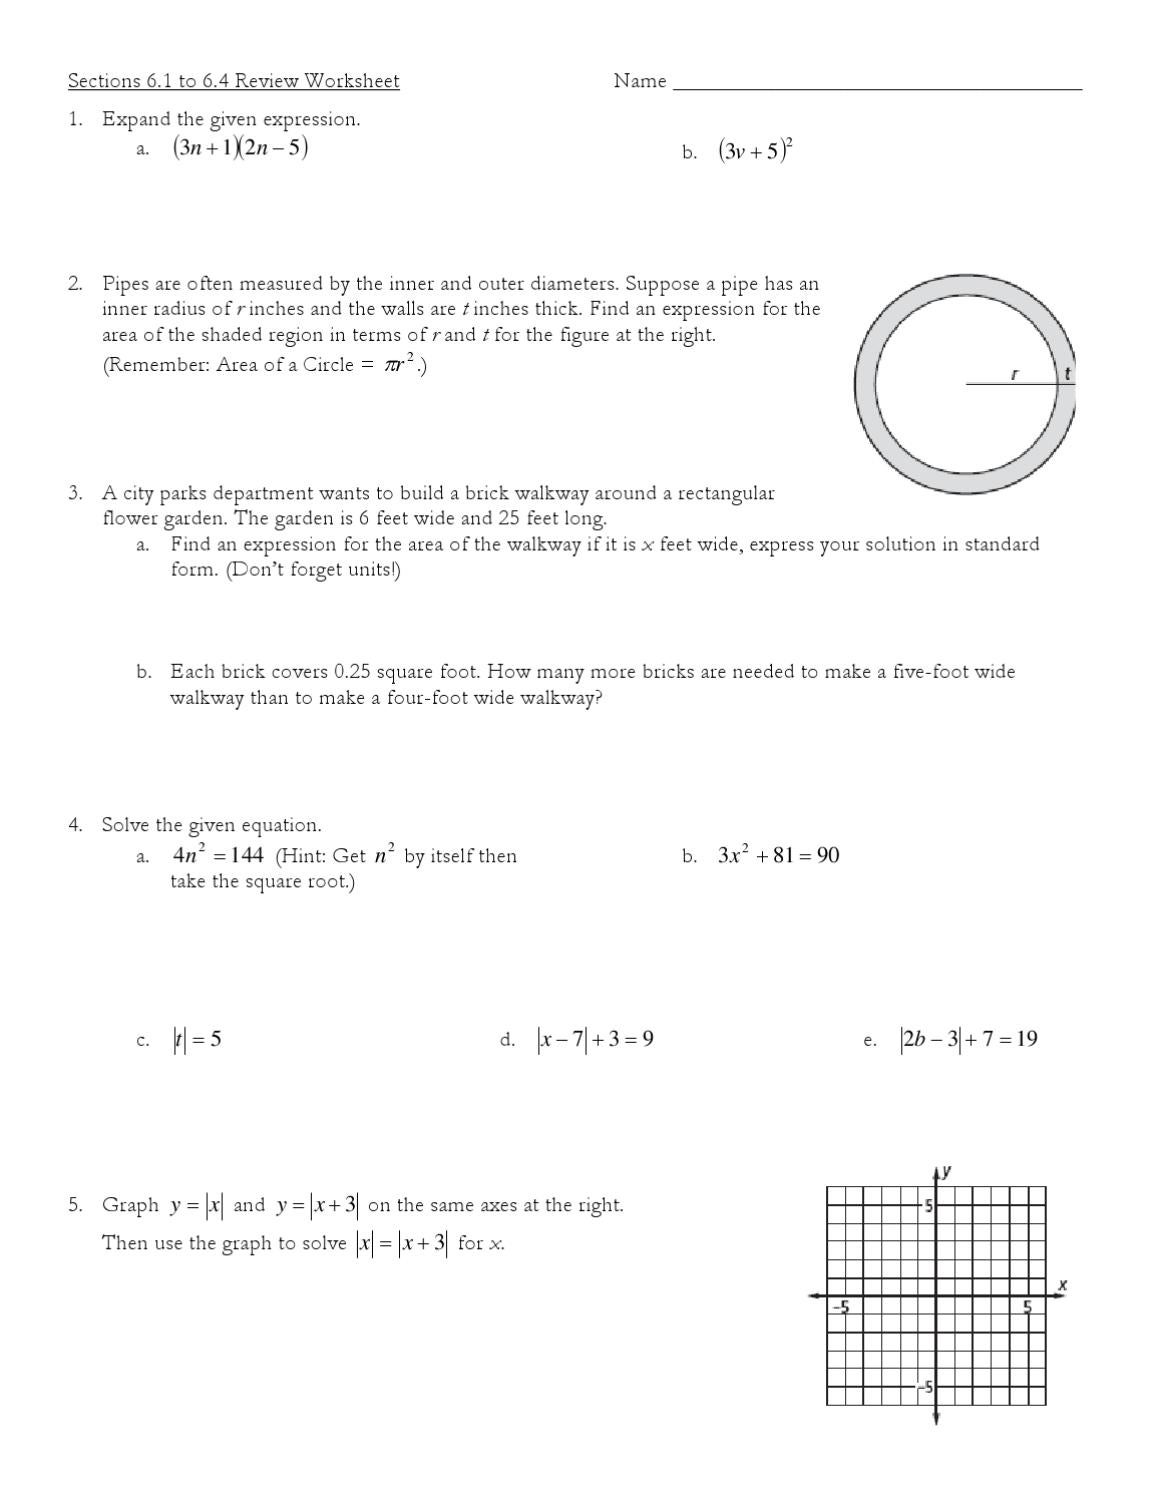 Sections 61 To 64 Review Worksheet By Josh Stegman Issuu